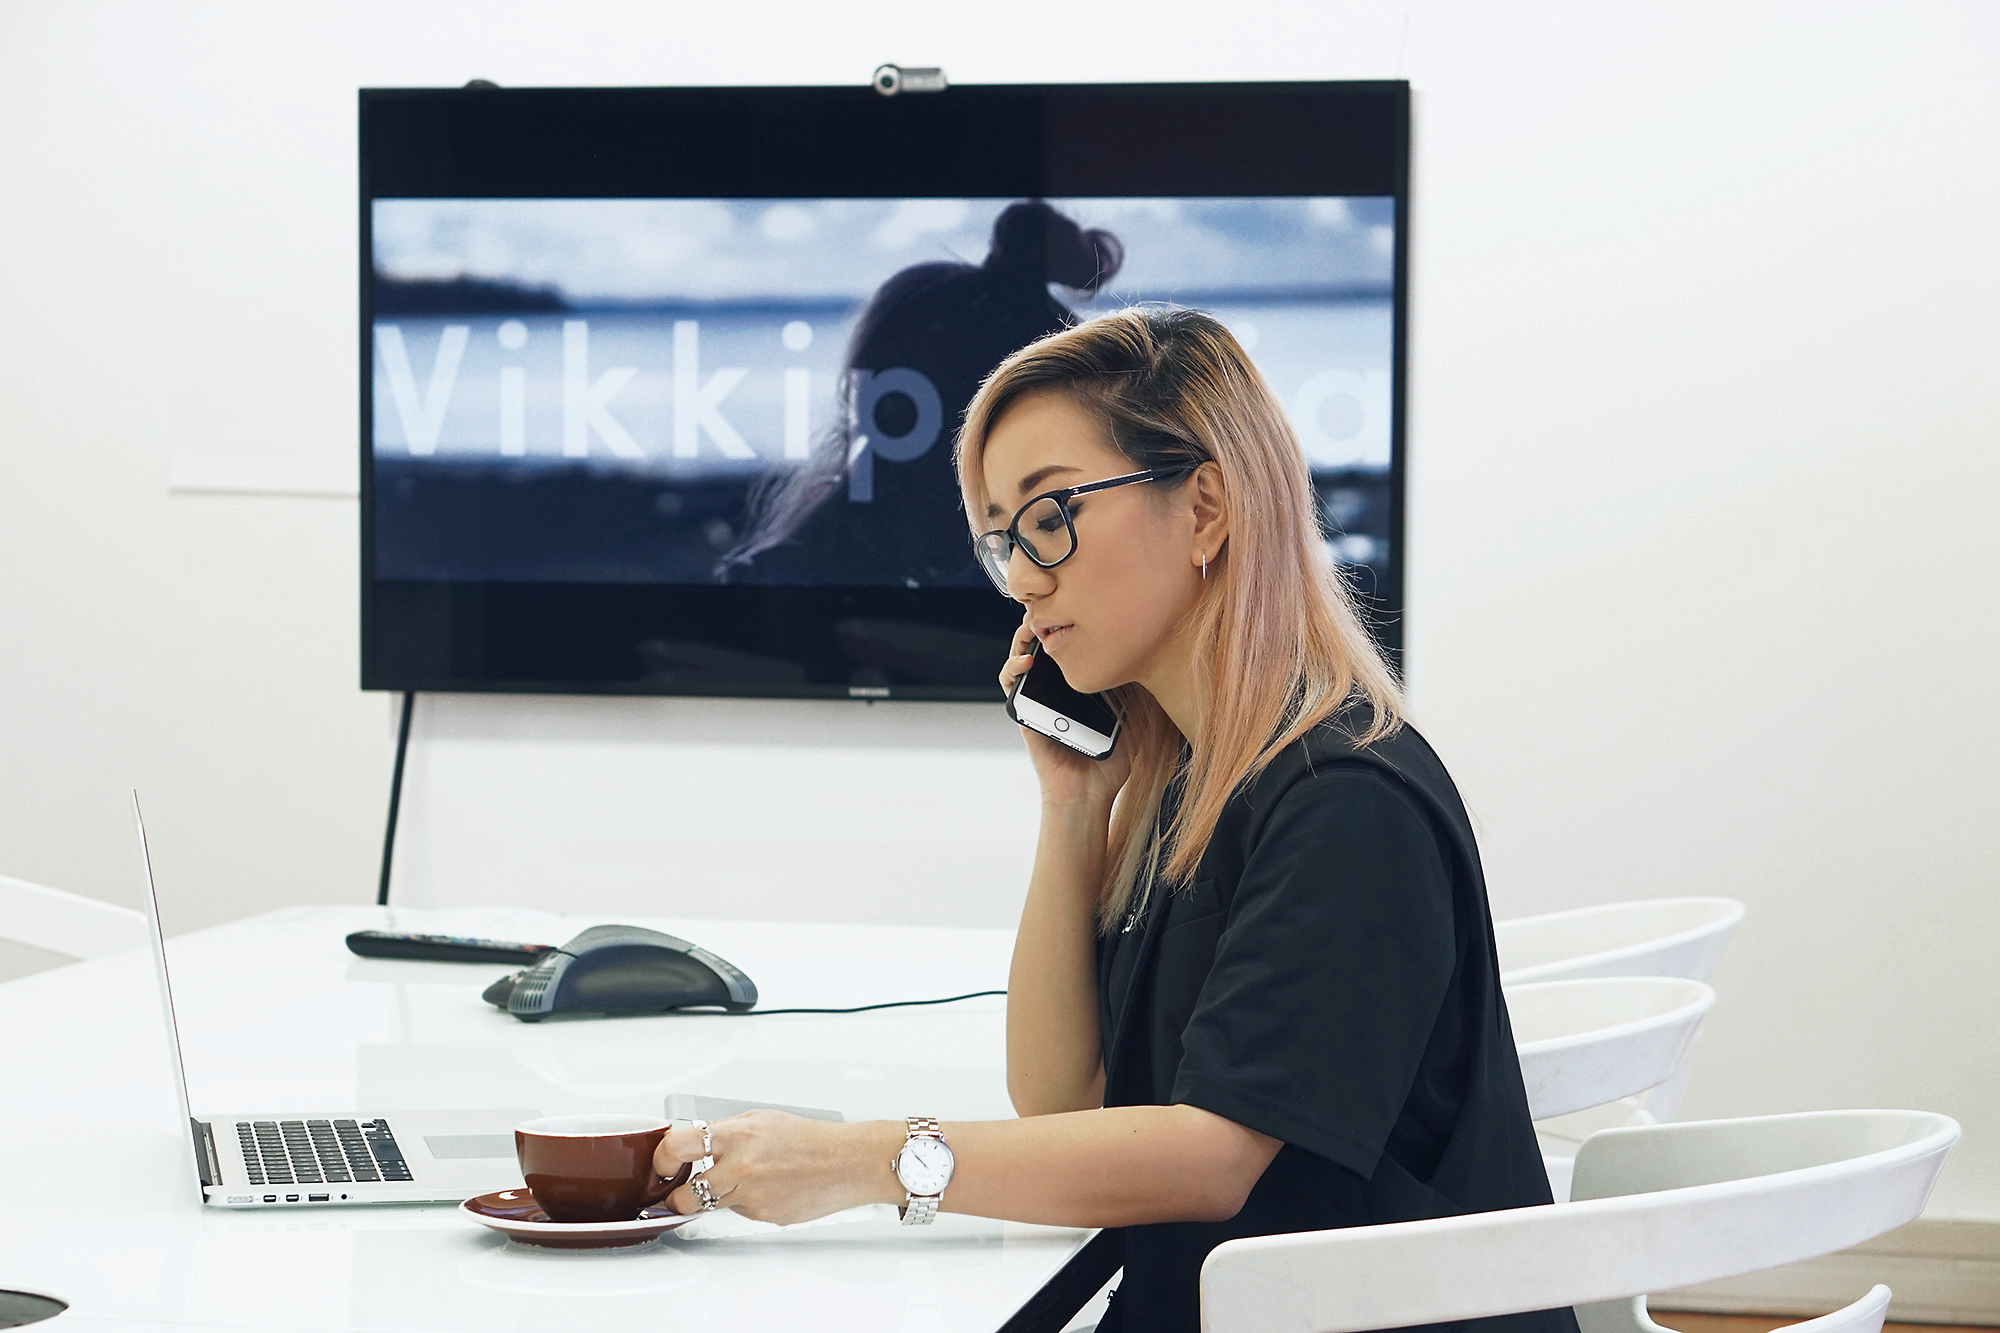 Multi-tasking done right: drinking nothing, talking to no one, looking at a blank screen 😂